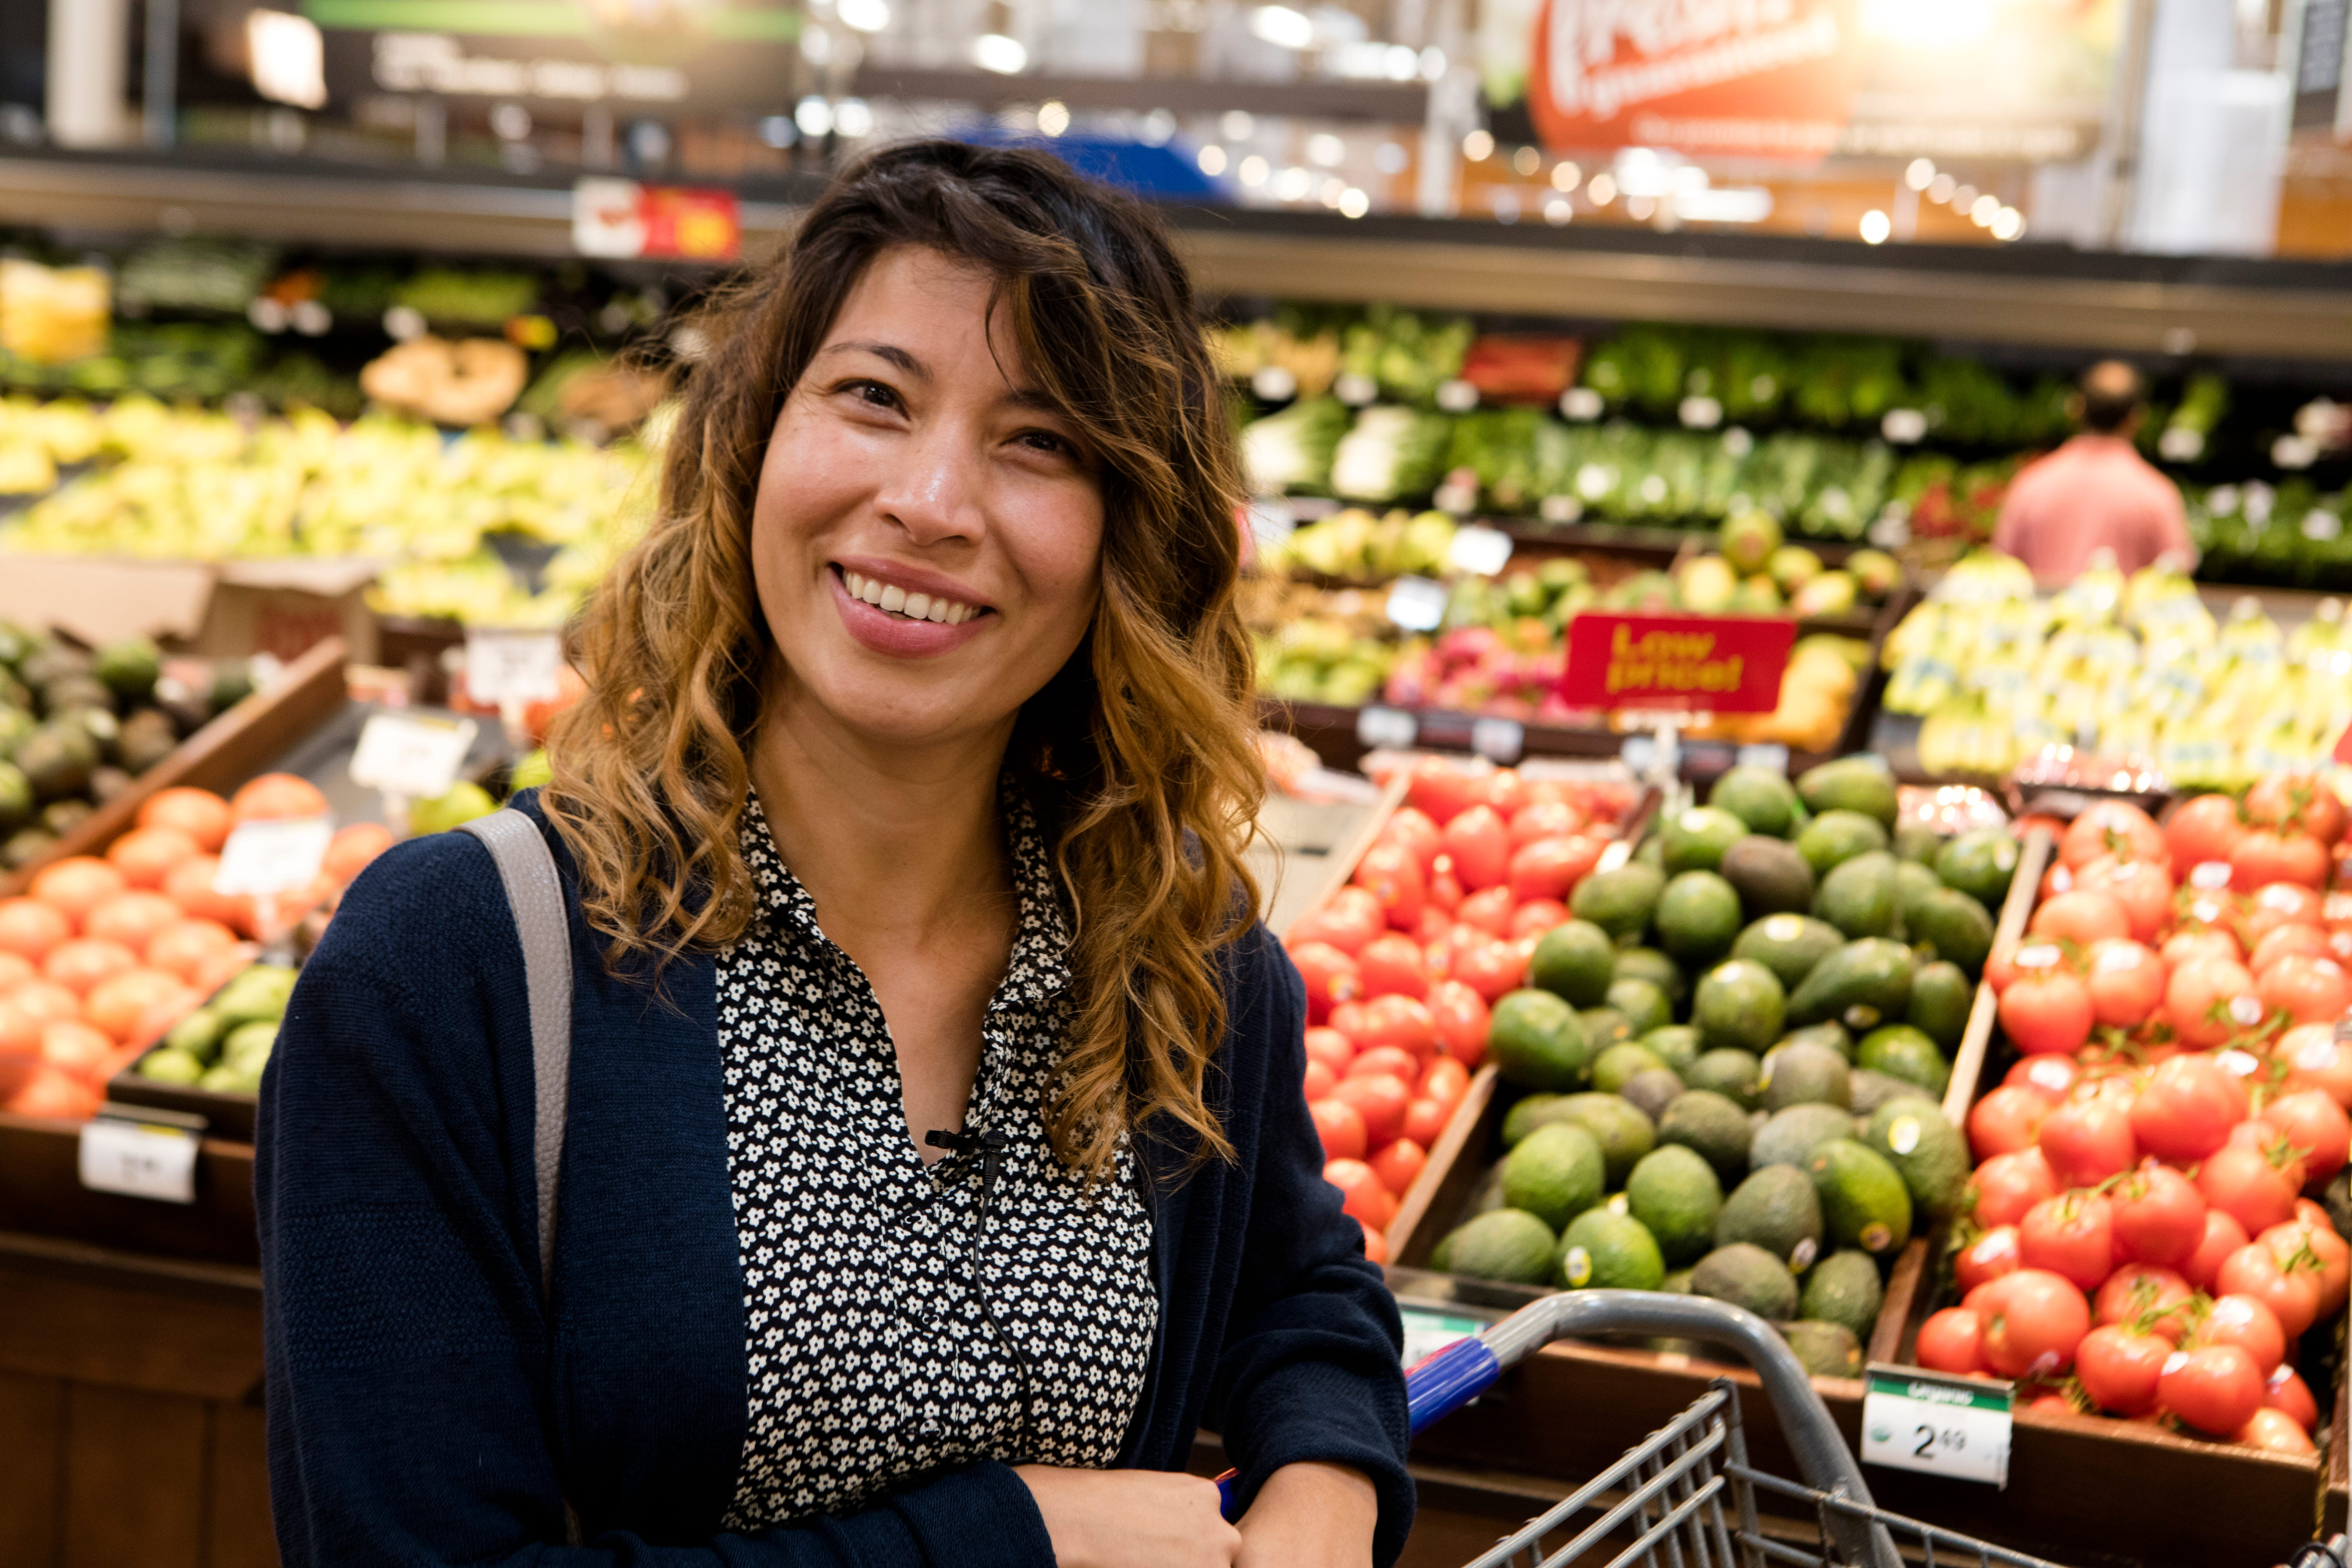 Will Donald Trump's trade wars raise grocery prices?